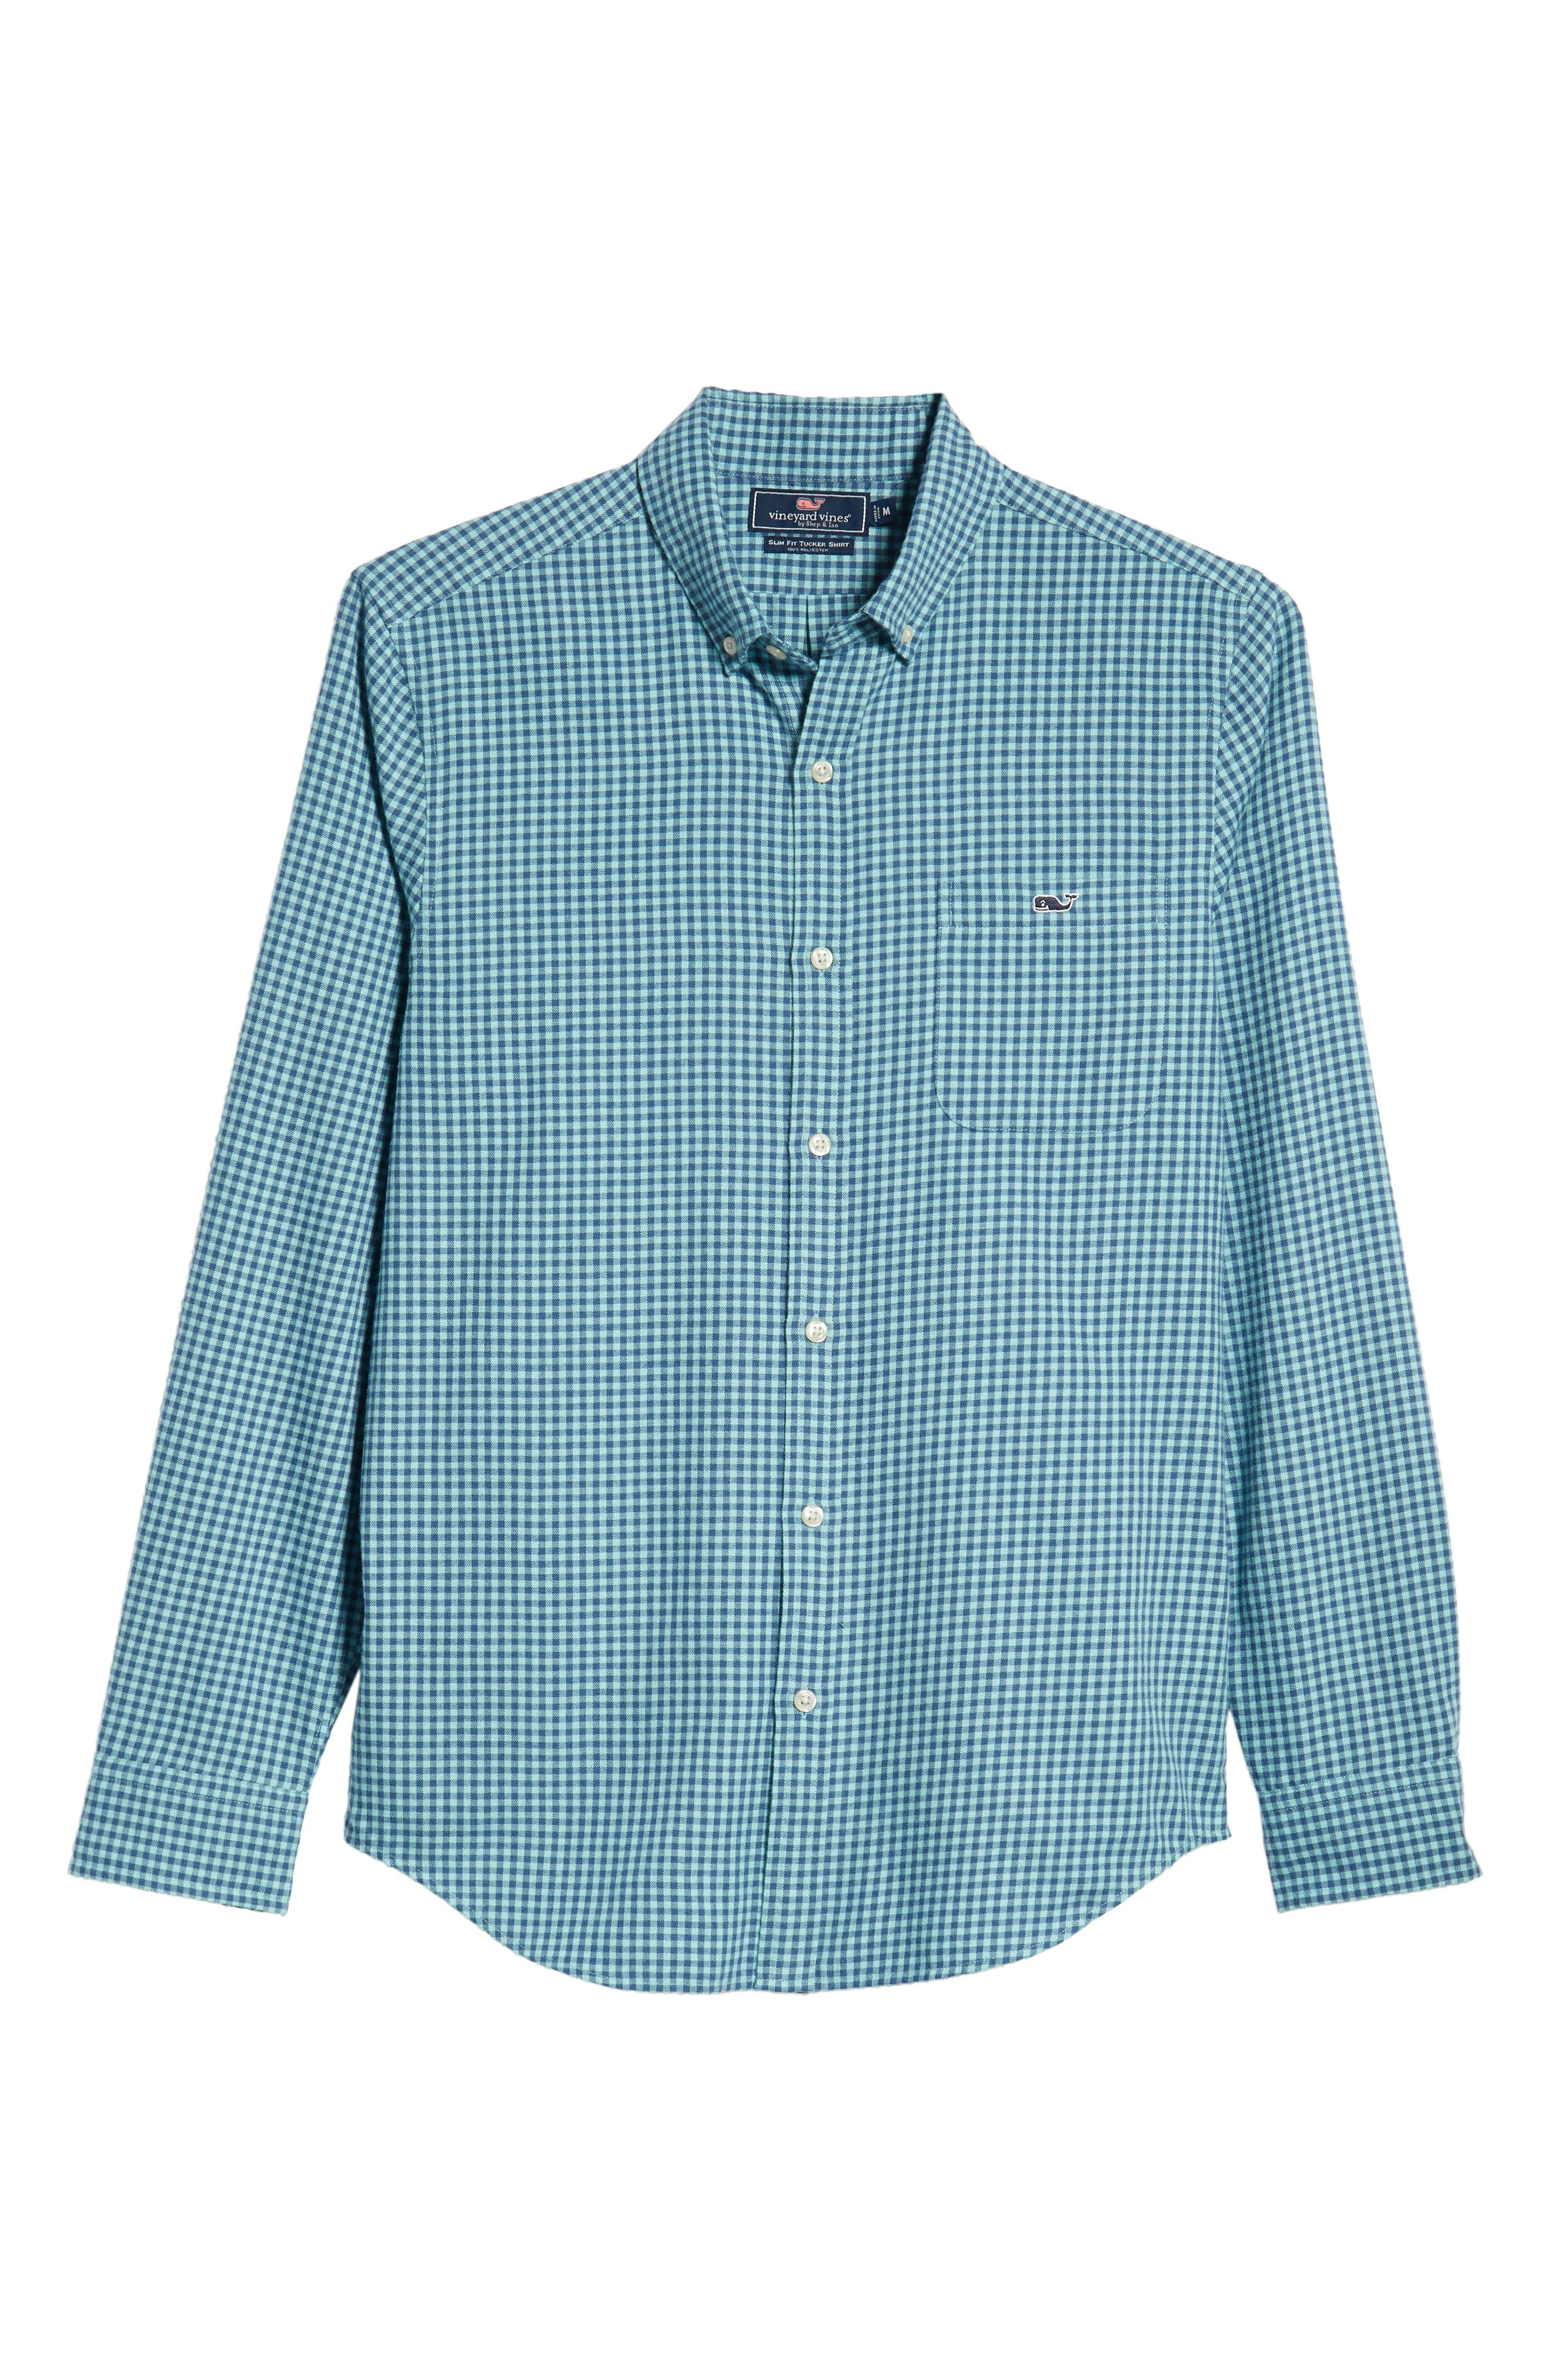 Tradewinds Slim Fit Check Flannel Shirt,                             Alternate thumbnail 5, color,                             POOL SIDE